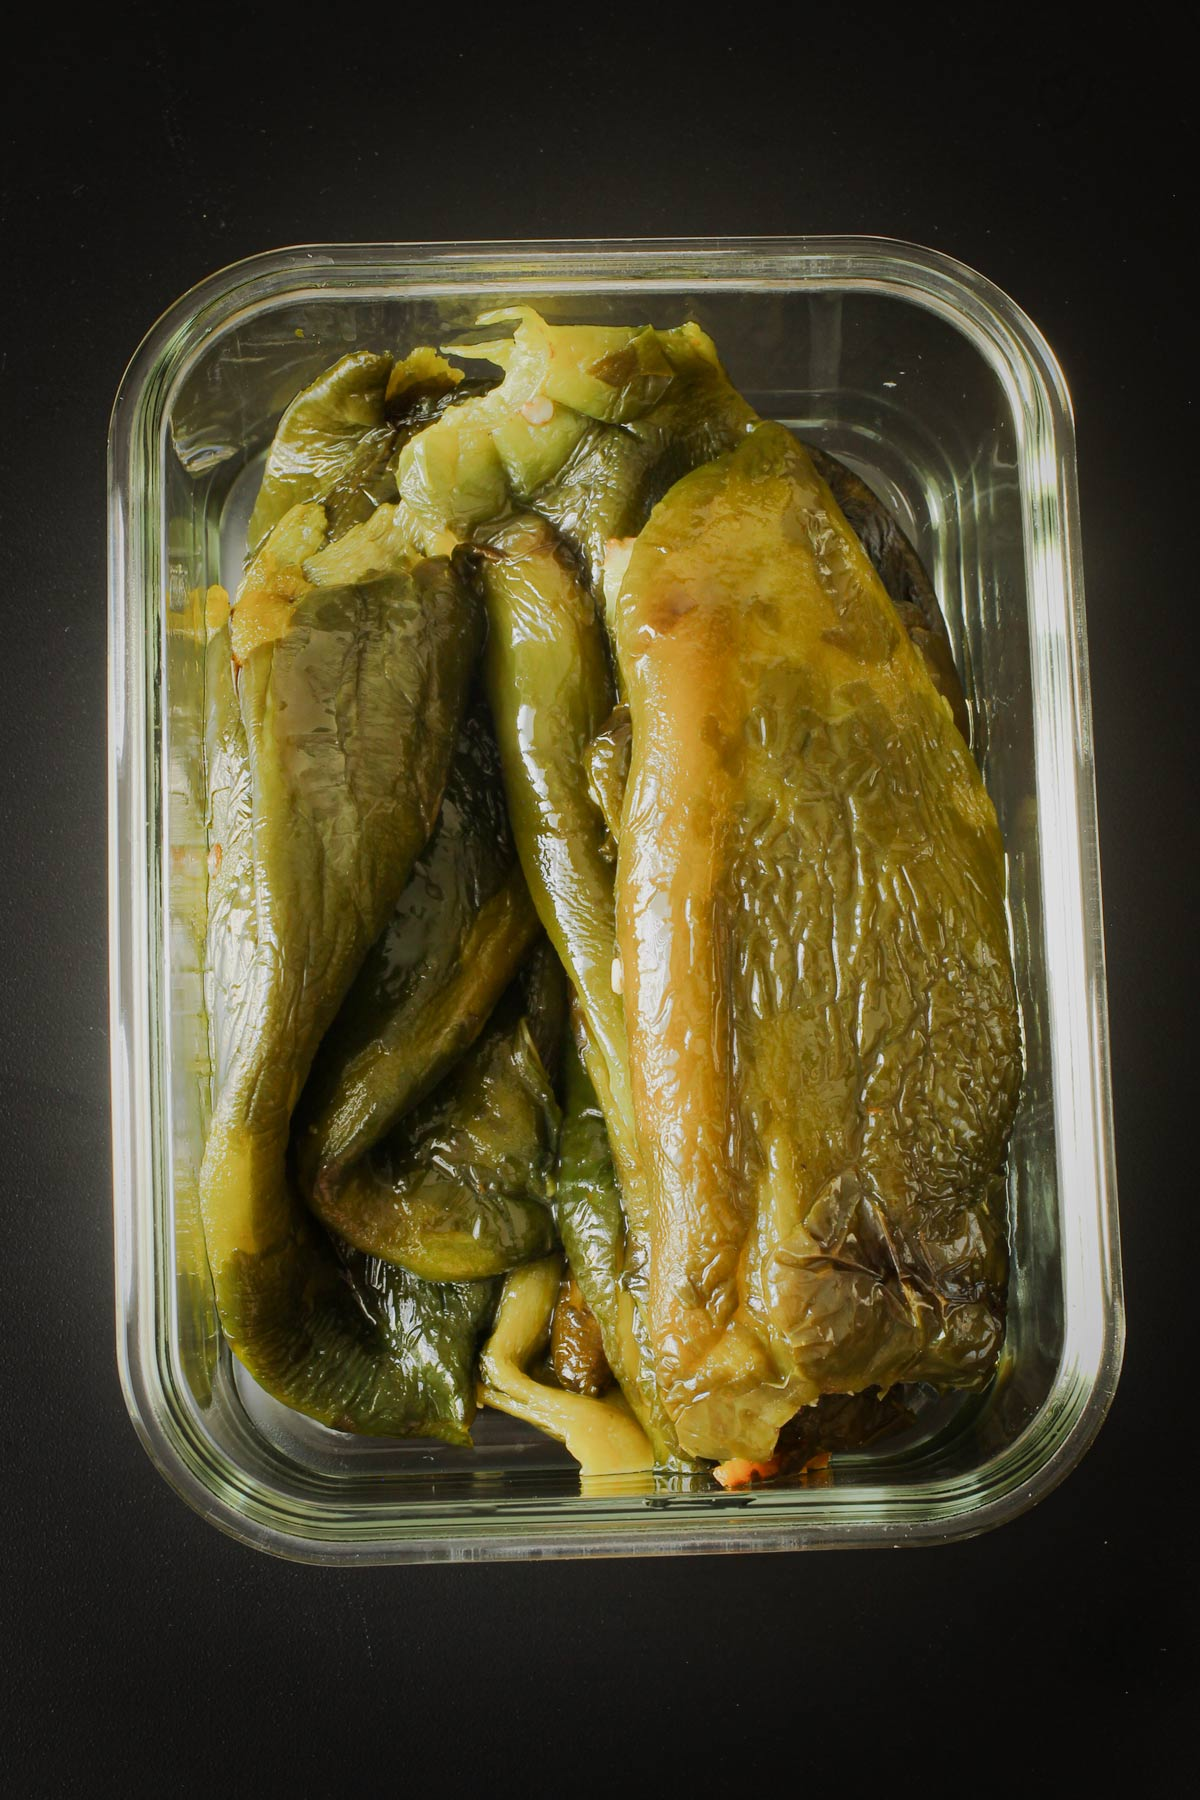 whole roasted poblano peppers in glass dish.